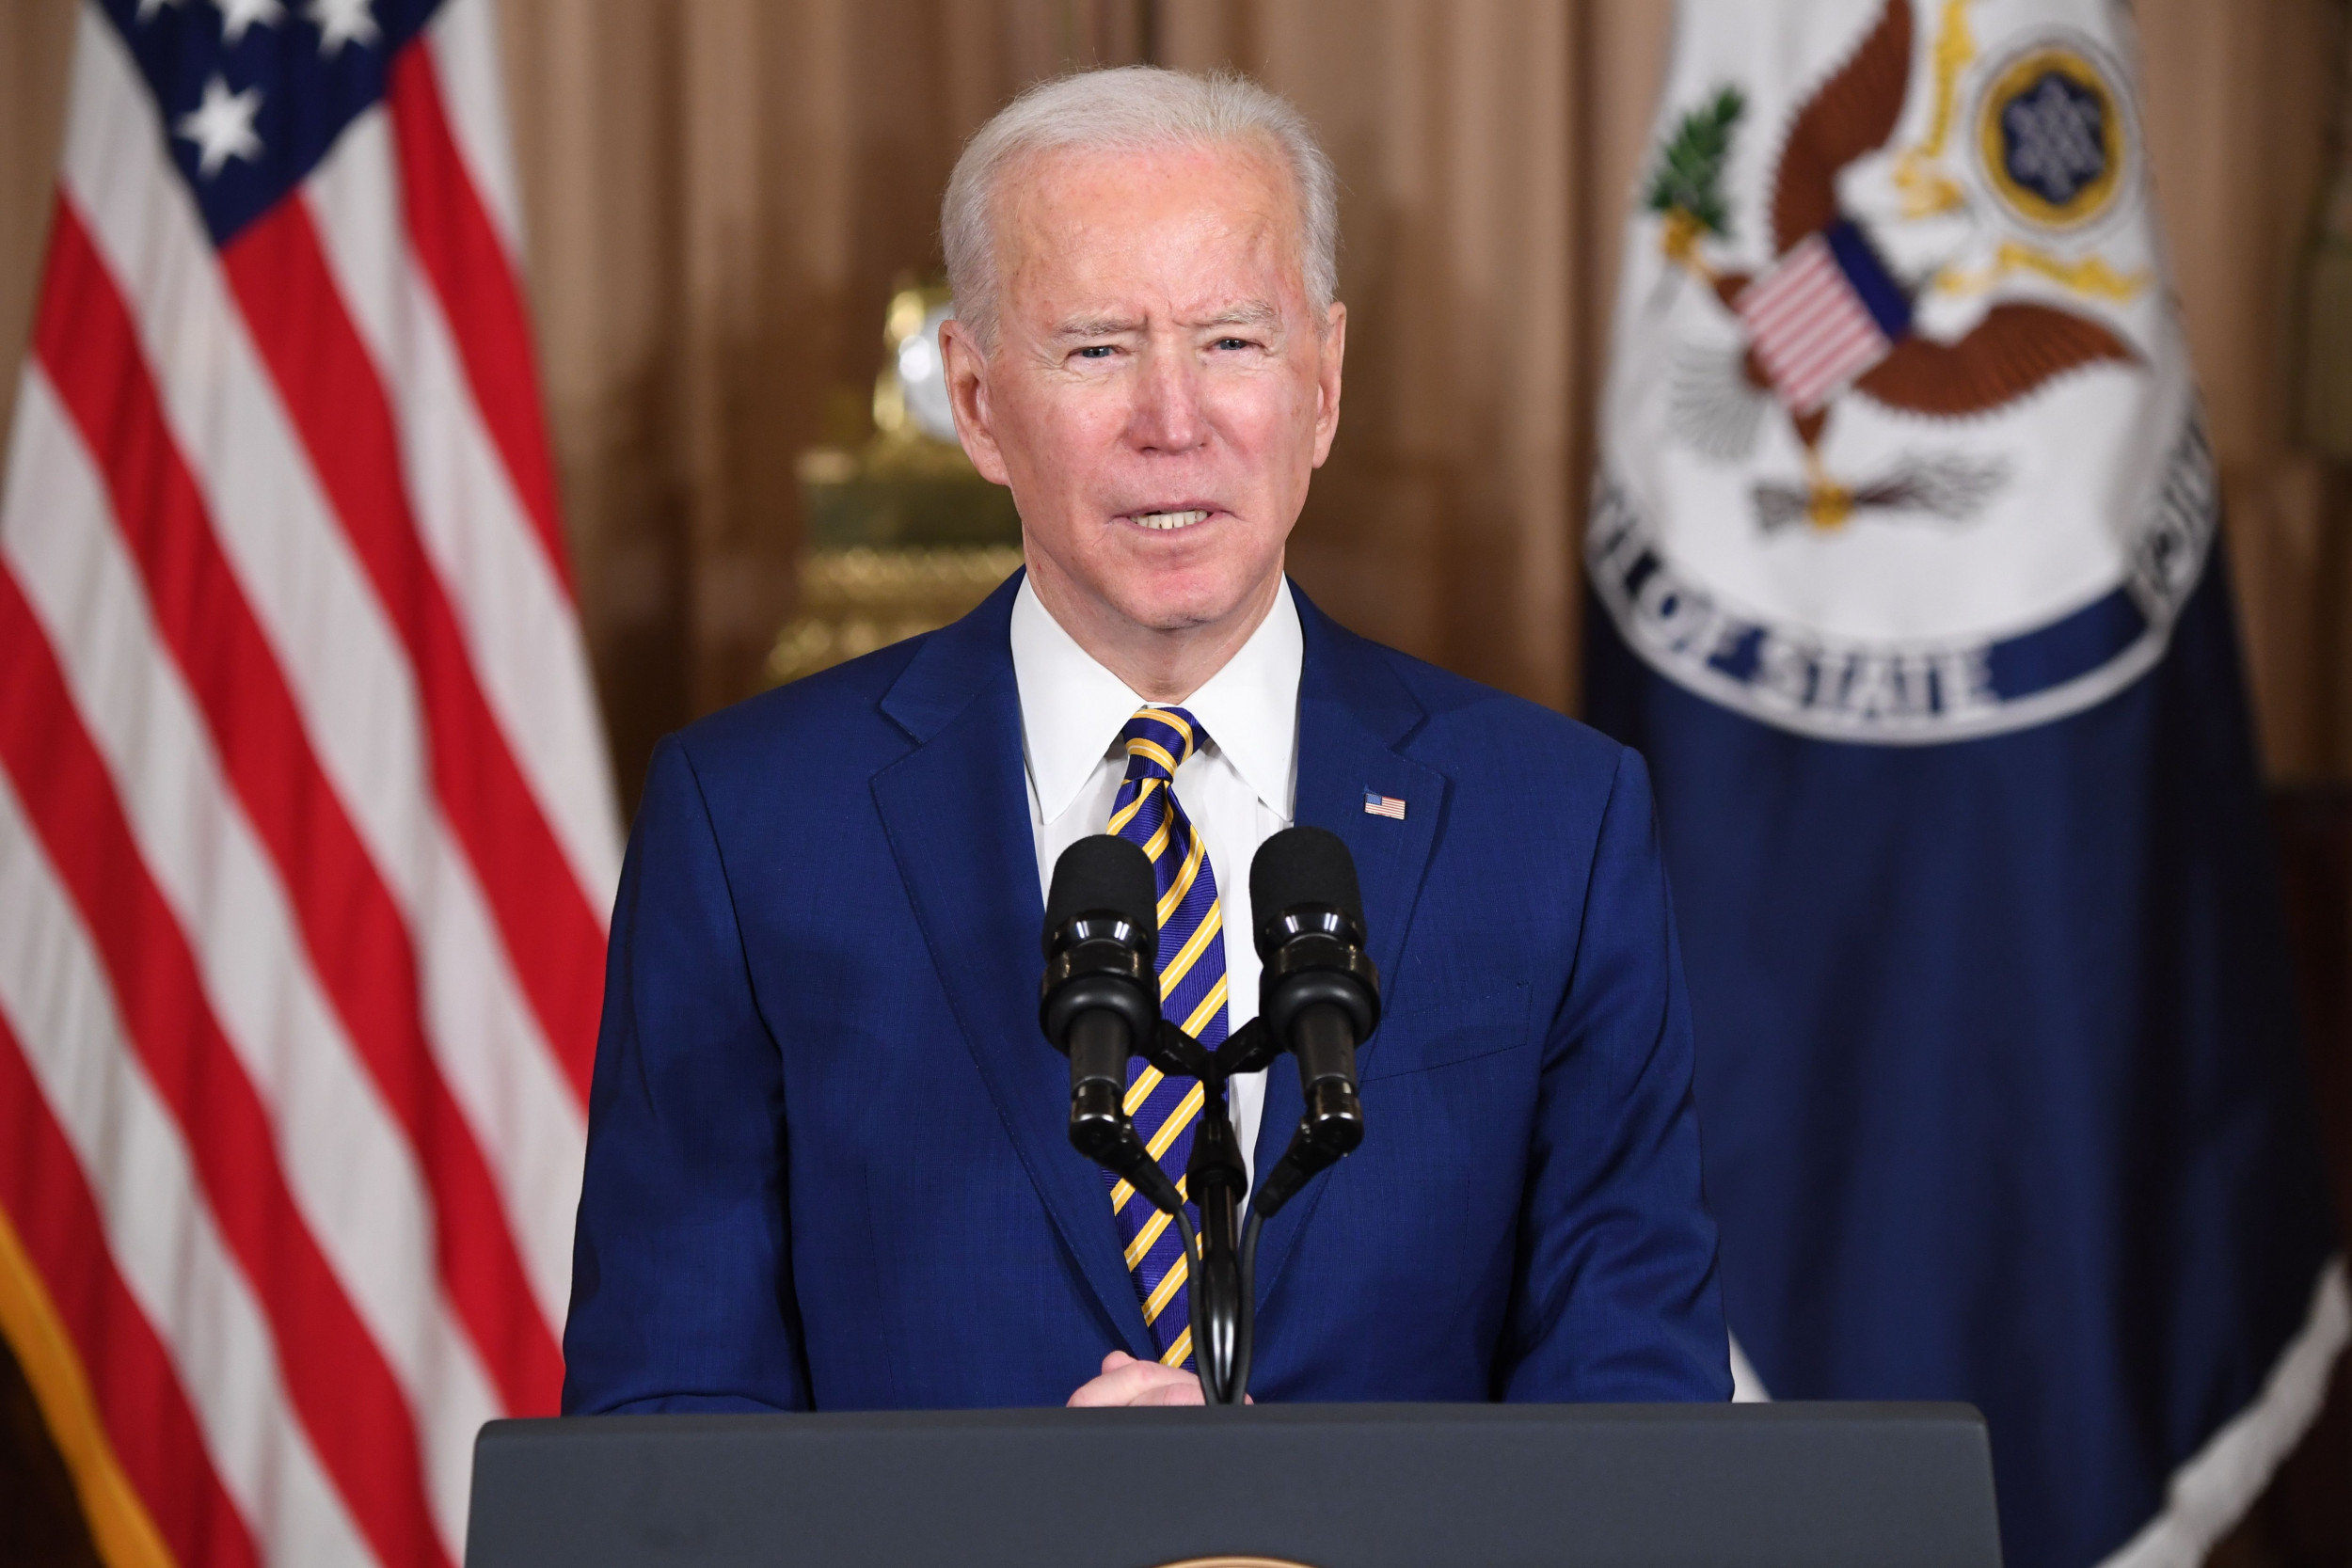 Truth Verify: Did Joe Biden Homicide Donald Trump's Operation Focusing on Intercourse Offenders?